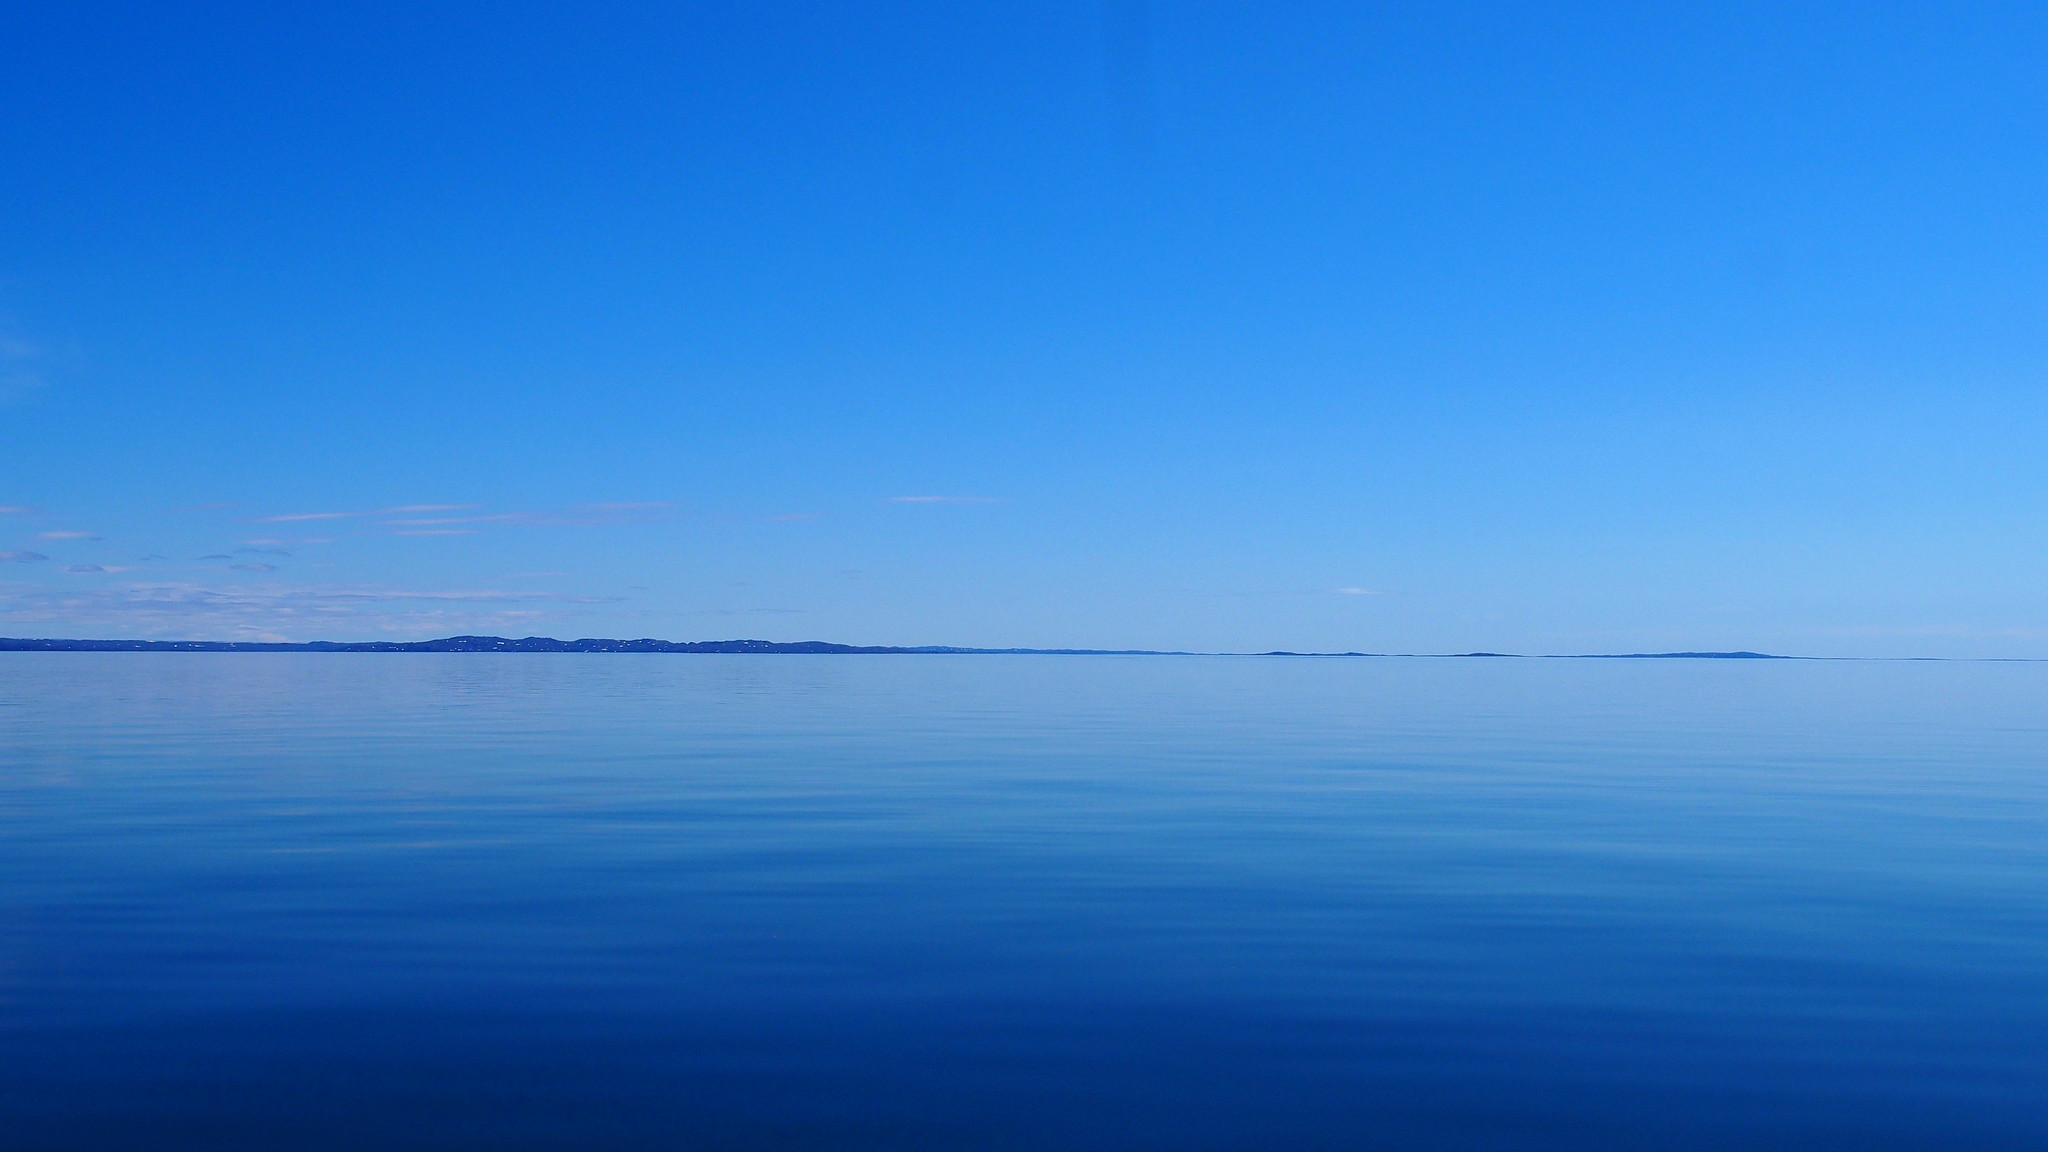 A calm, blue view of the horizon reflected over a body of water